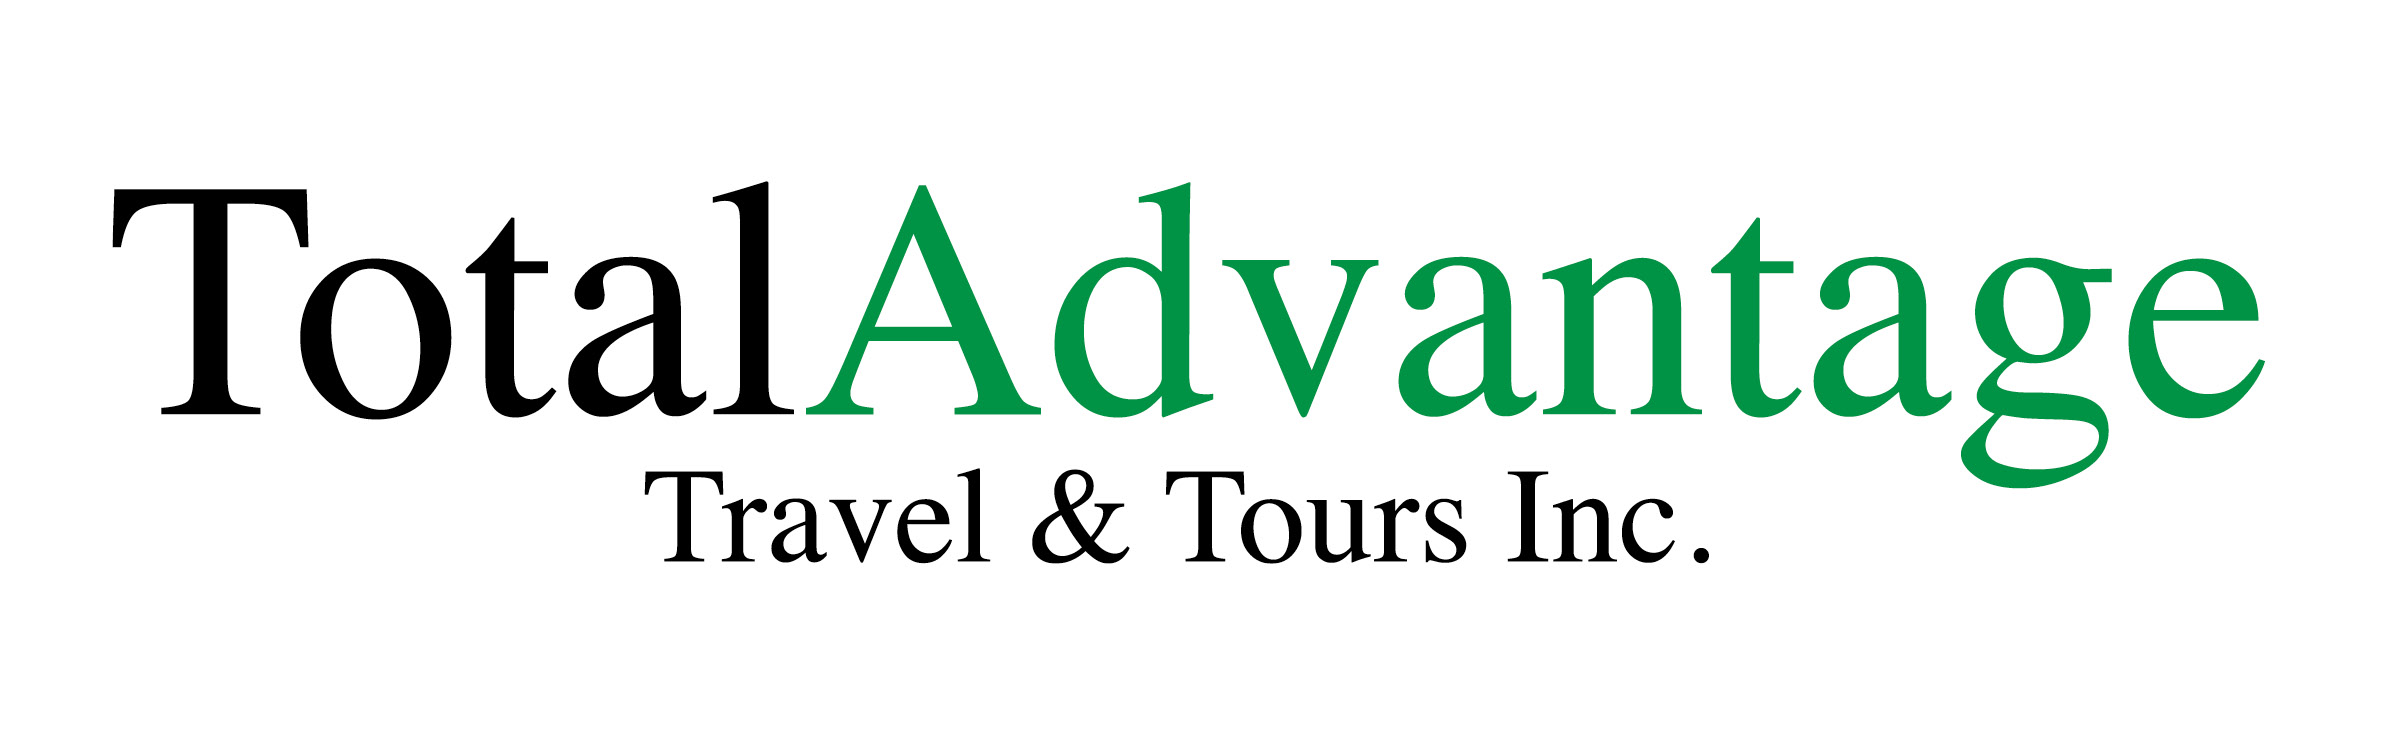 Total Advantage Travel